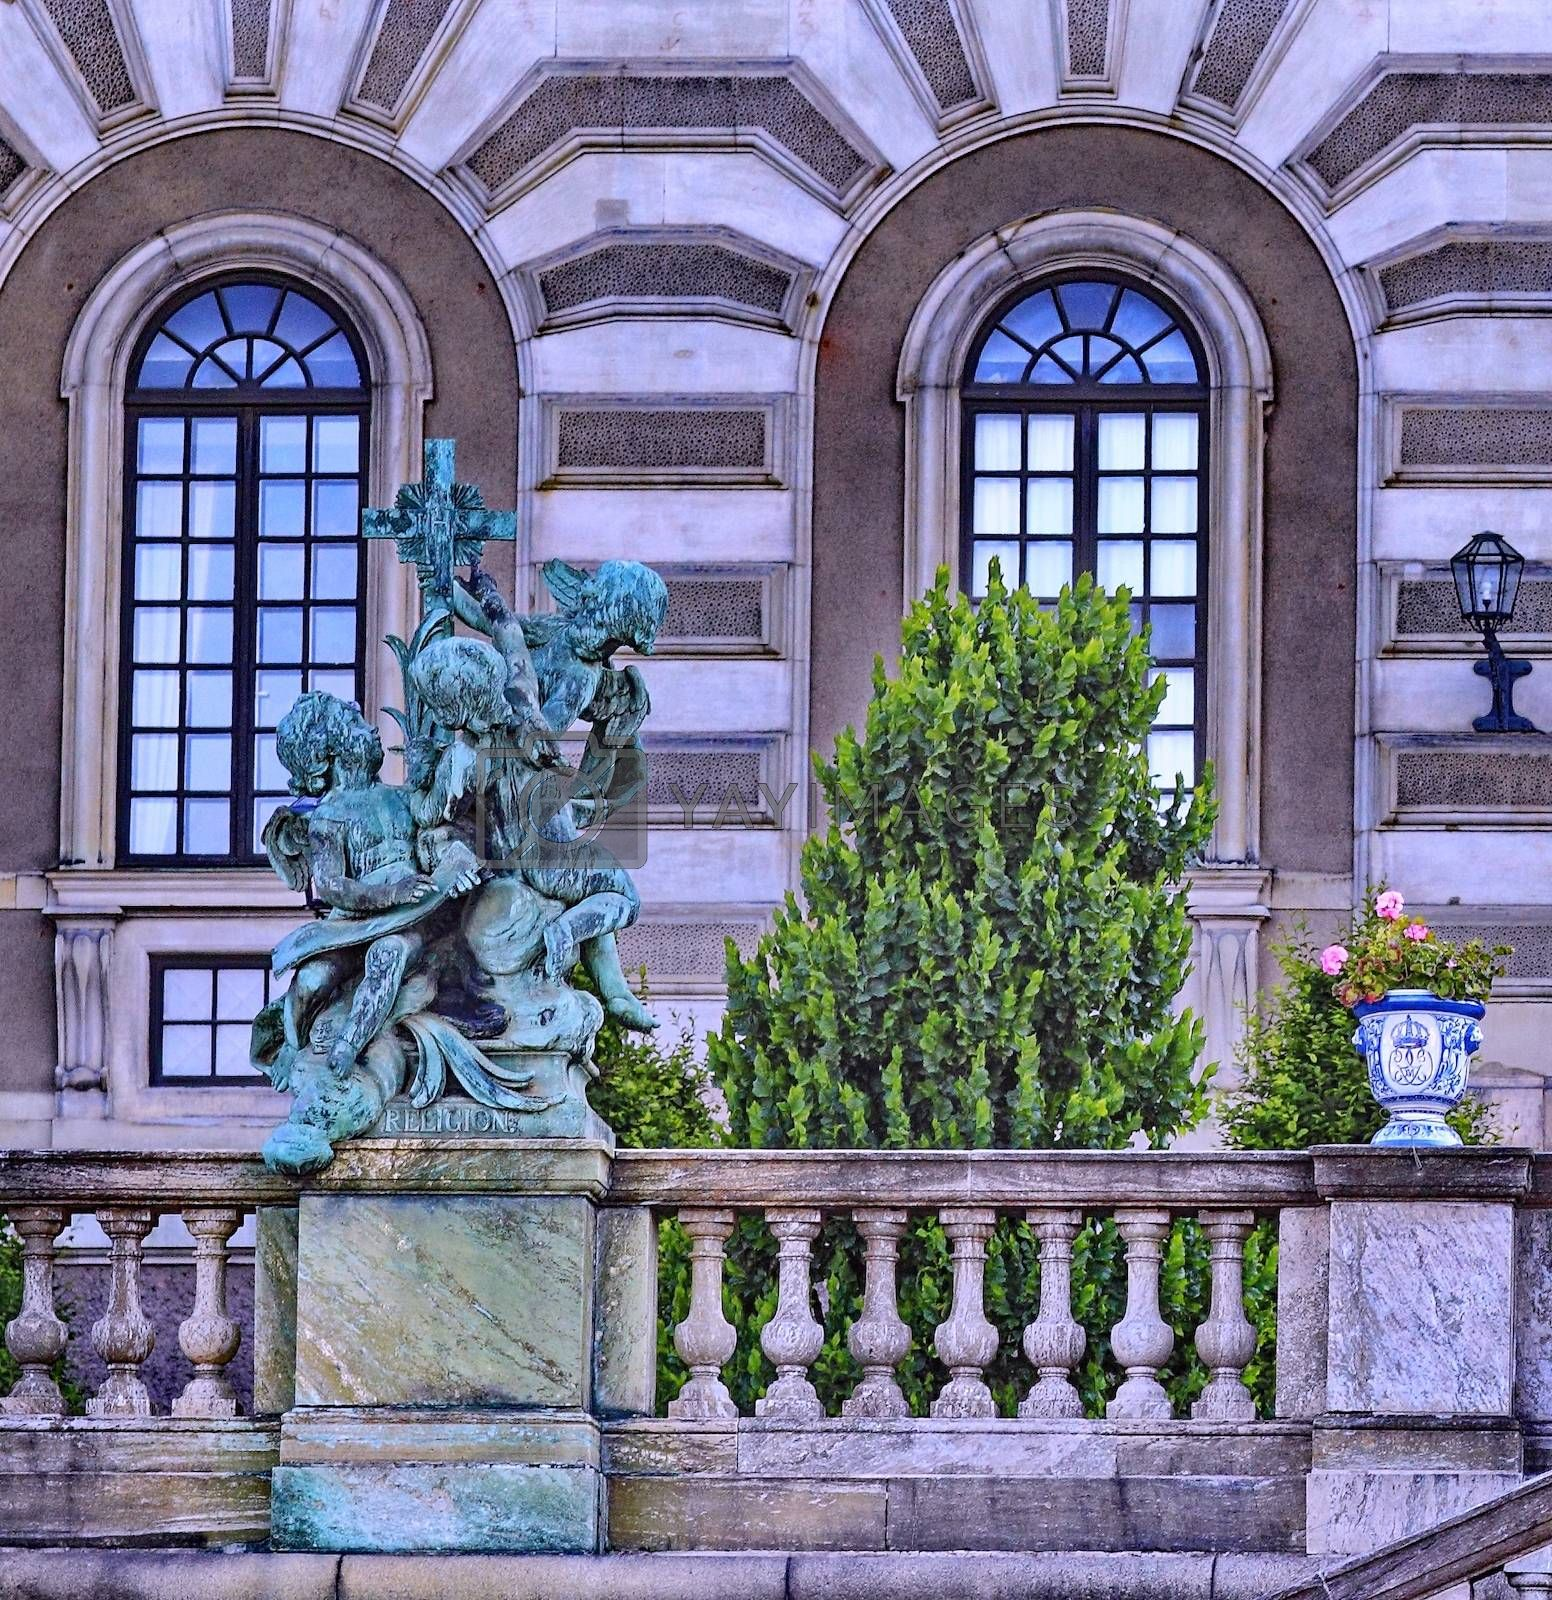 Royalty free image of The Royal Palace in Stockholm by victorych